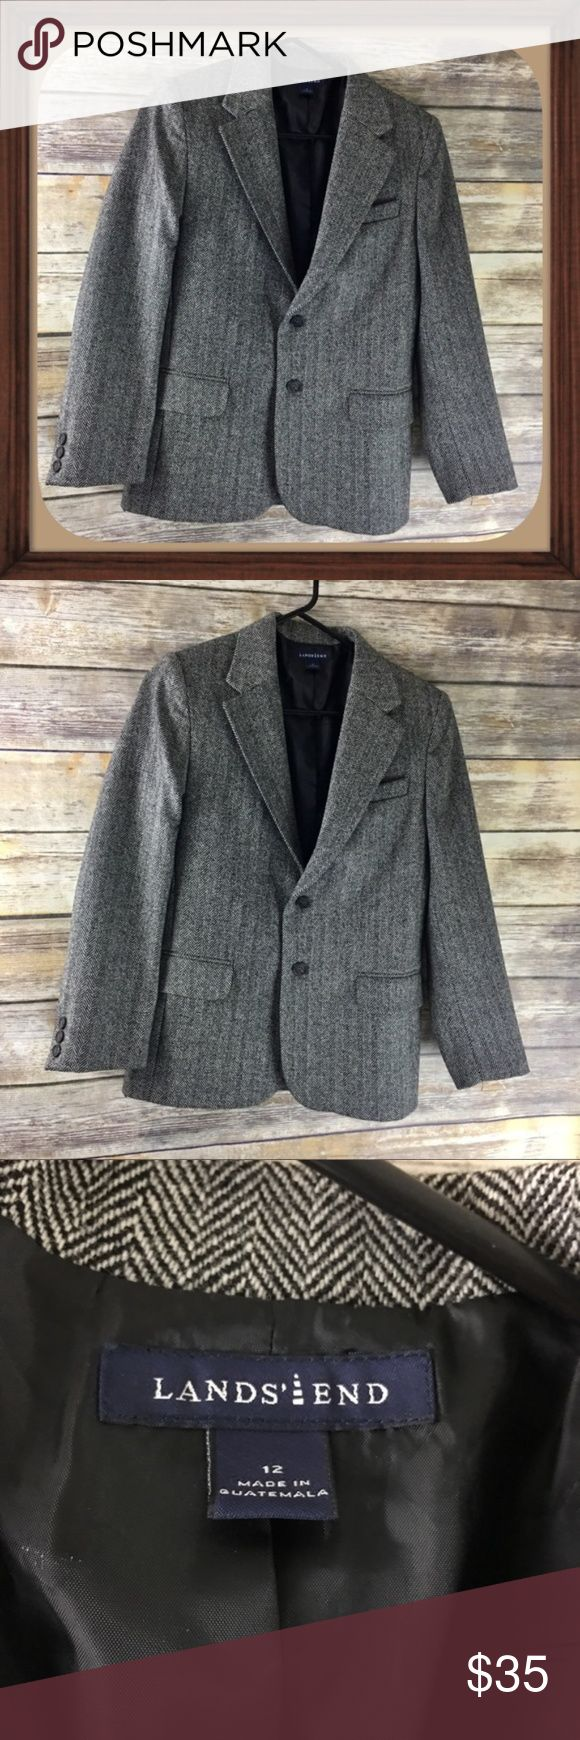 Lands End Black Design Boys Wool Blazer size 12 Boys black design wool blazer. Size 12. In excellent used condition. 25 inches long. 21 inch sleeves. 15 inches arm pit to arm pit Lands' End Jackets & Coats Blazers